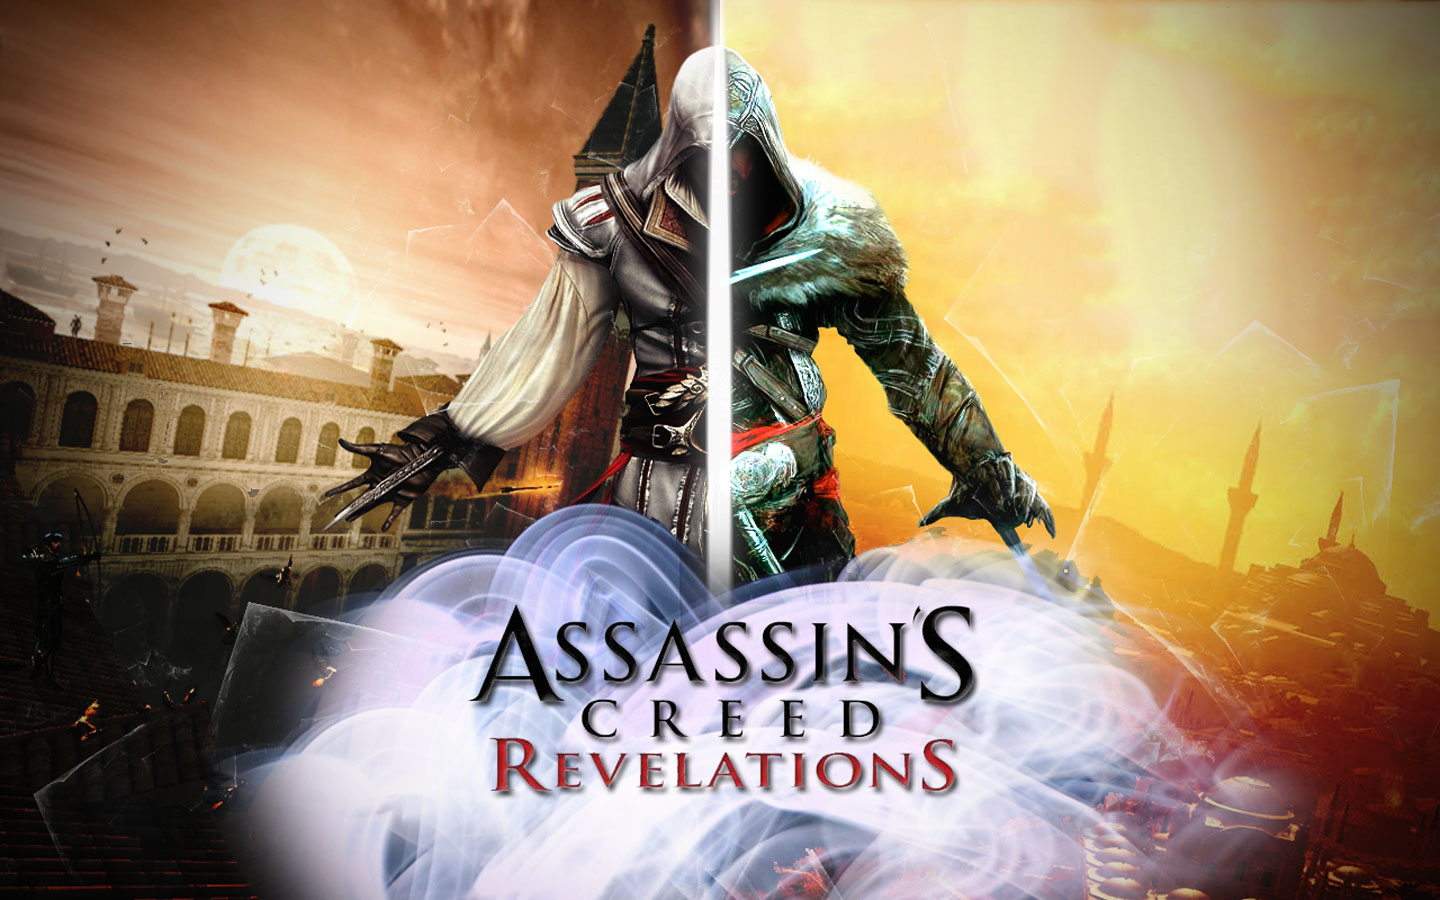 http://3.bp.blogspot.com/-xmsYxySQ2hY/T_fMG7vFf7I/AAAAAAAAAIA/0cymNaBHEKU/s1600/assassins_creed_revelations_wallpaper.jpg